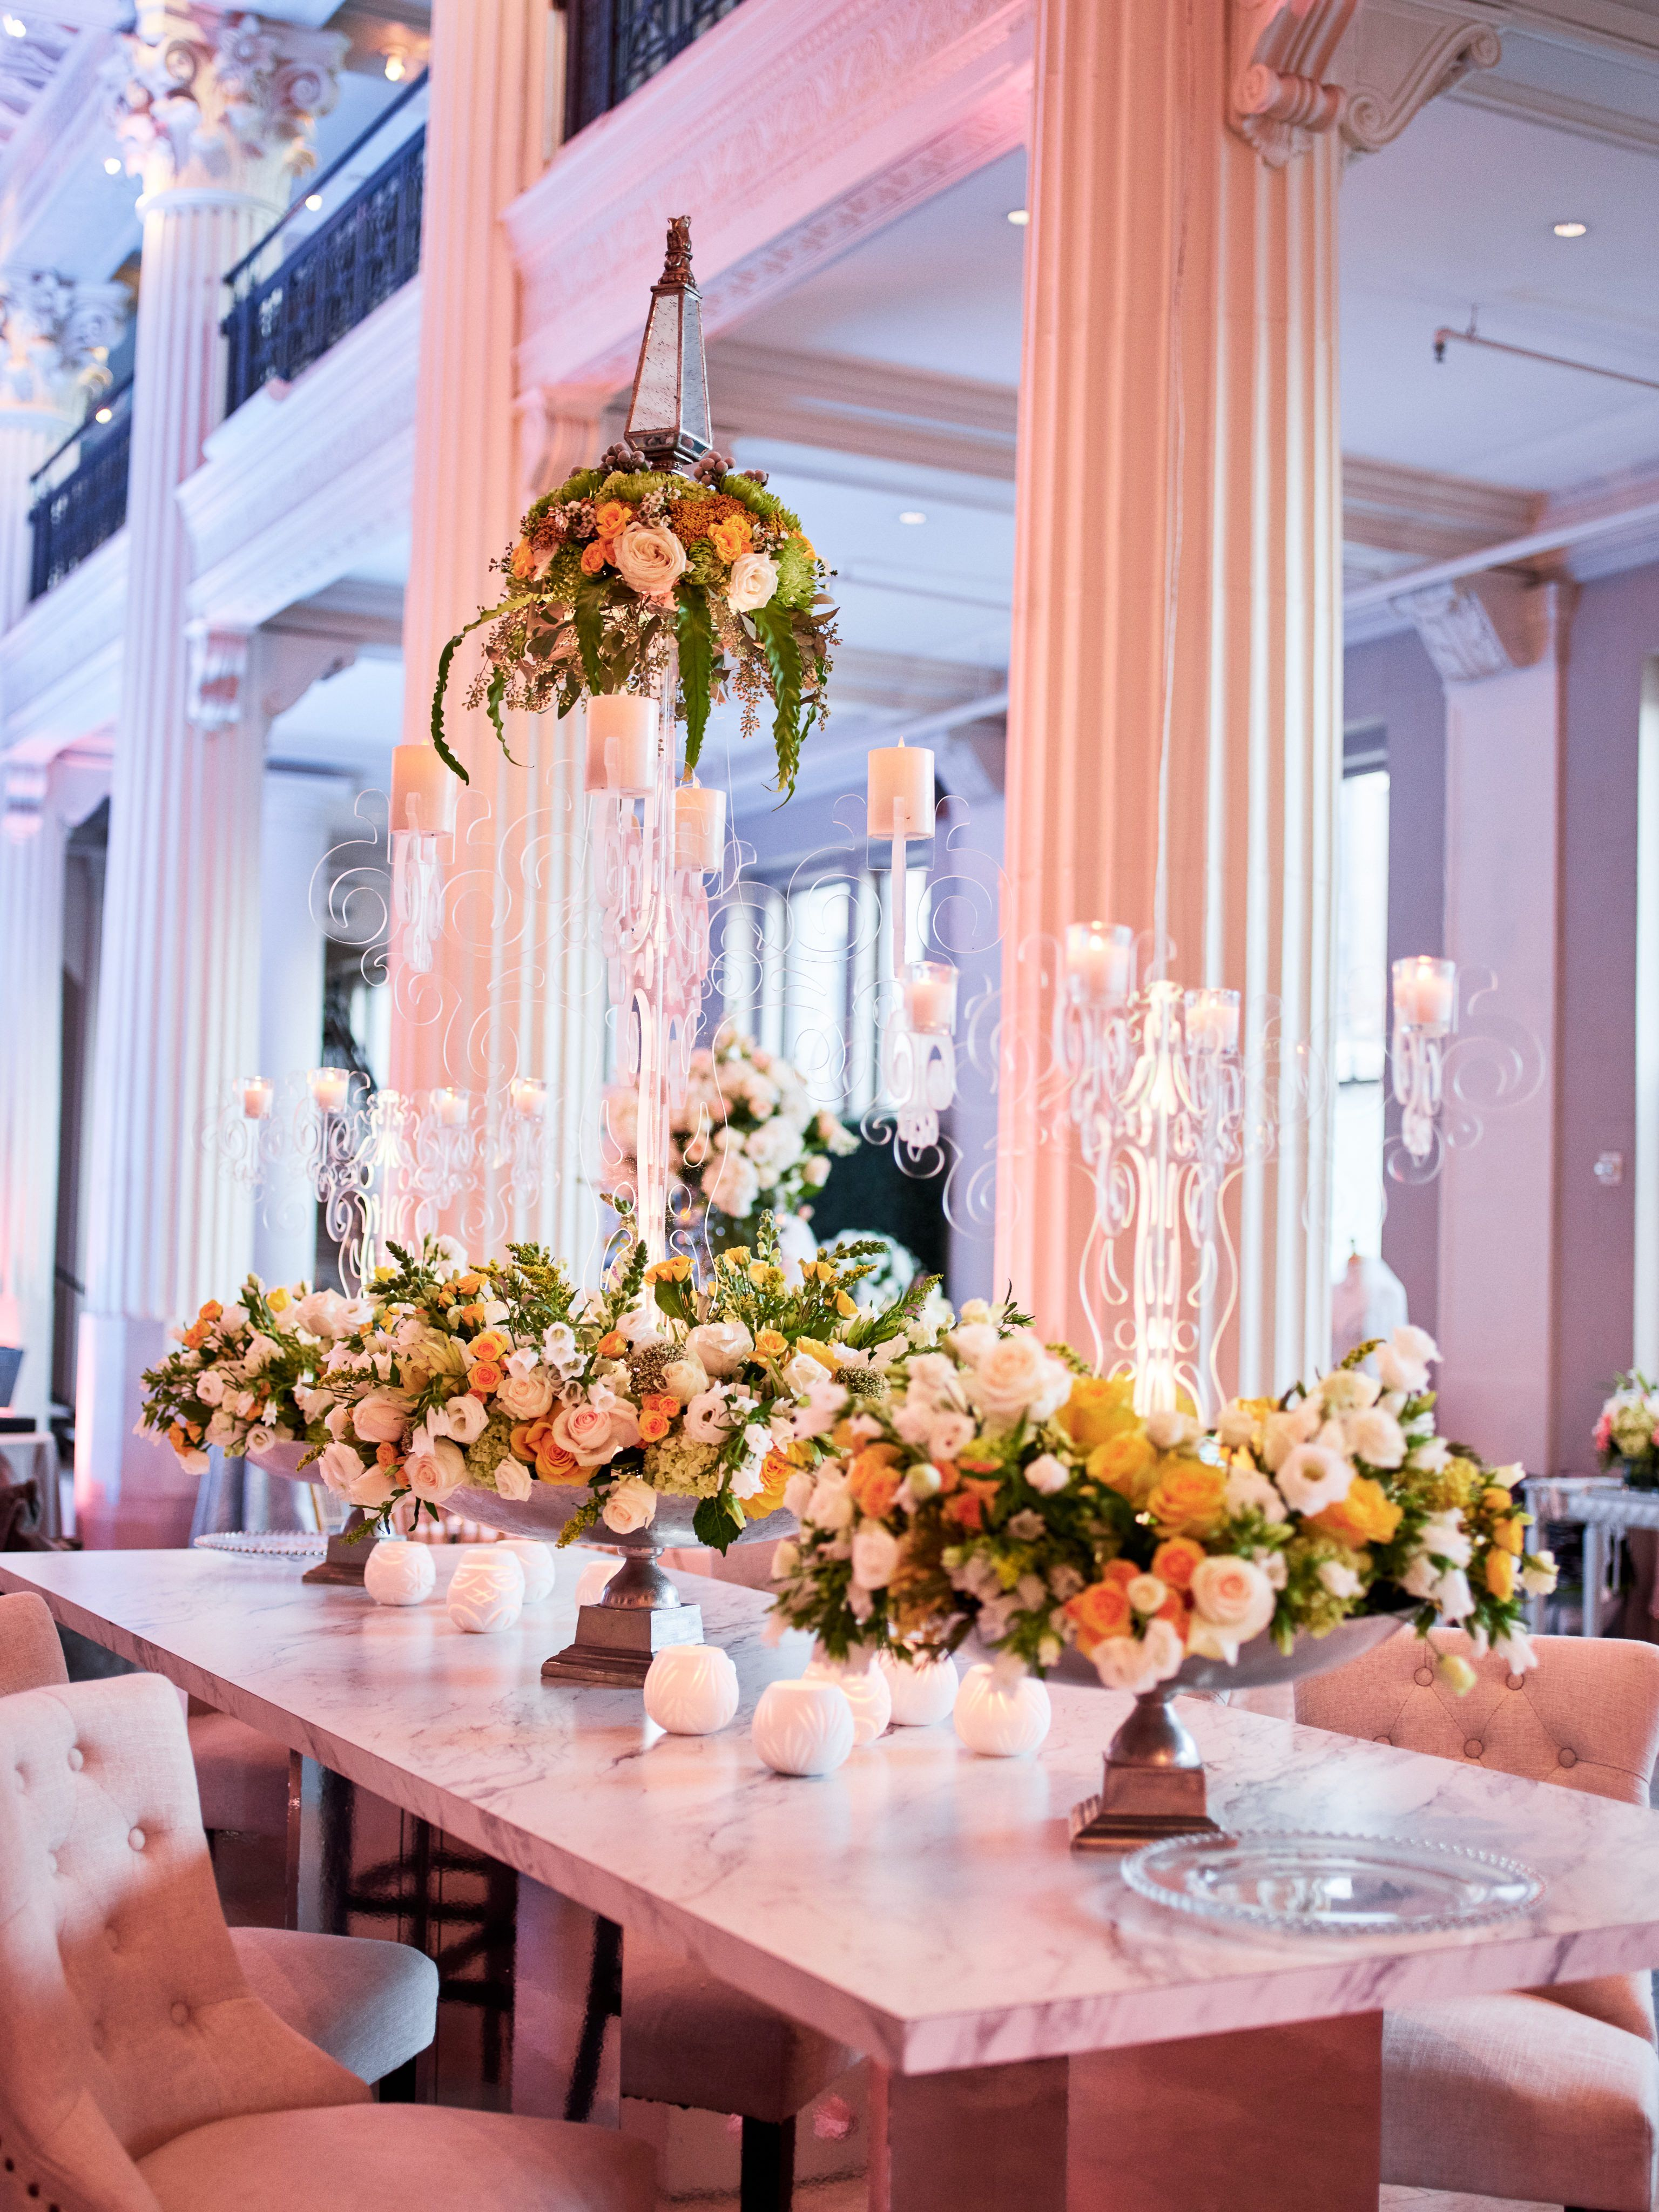 Let It Fly Events Rentals Florist Weddings In Houston Wedding Design Decoration Candles Reception Wedding Table Decorations Centerpieces